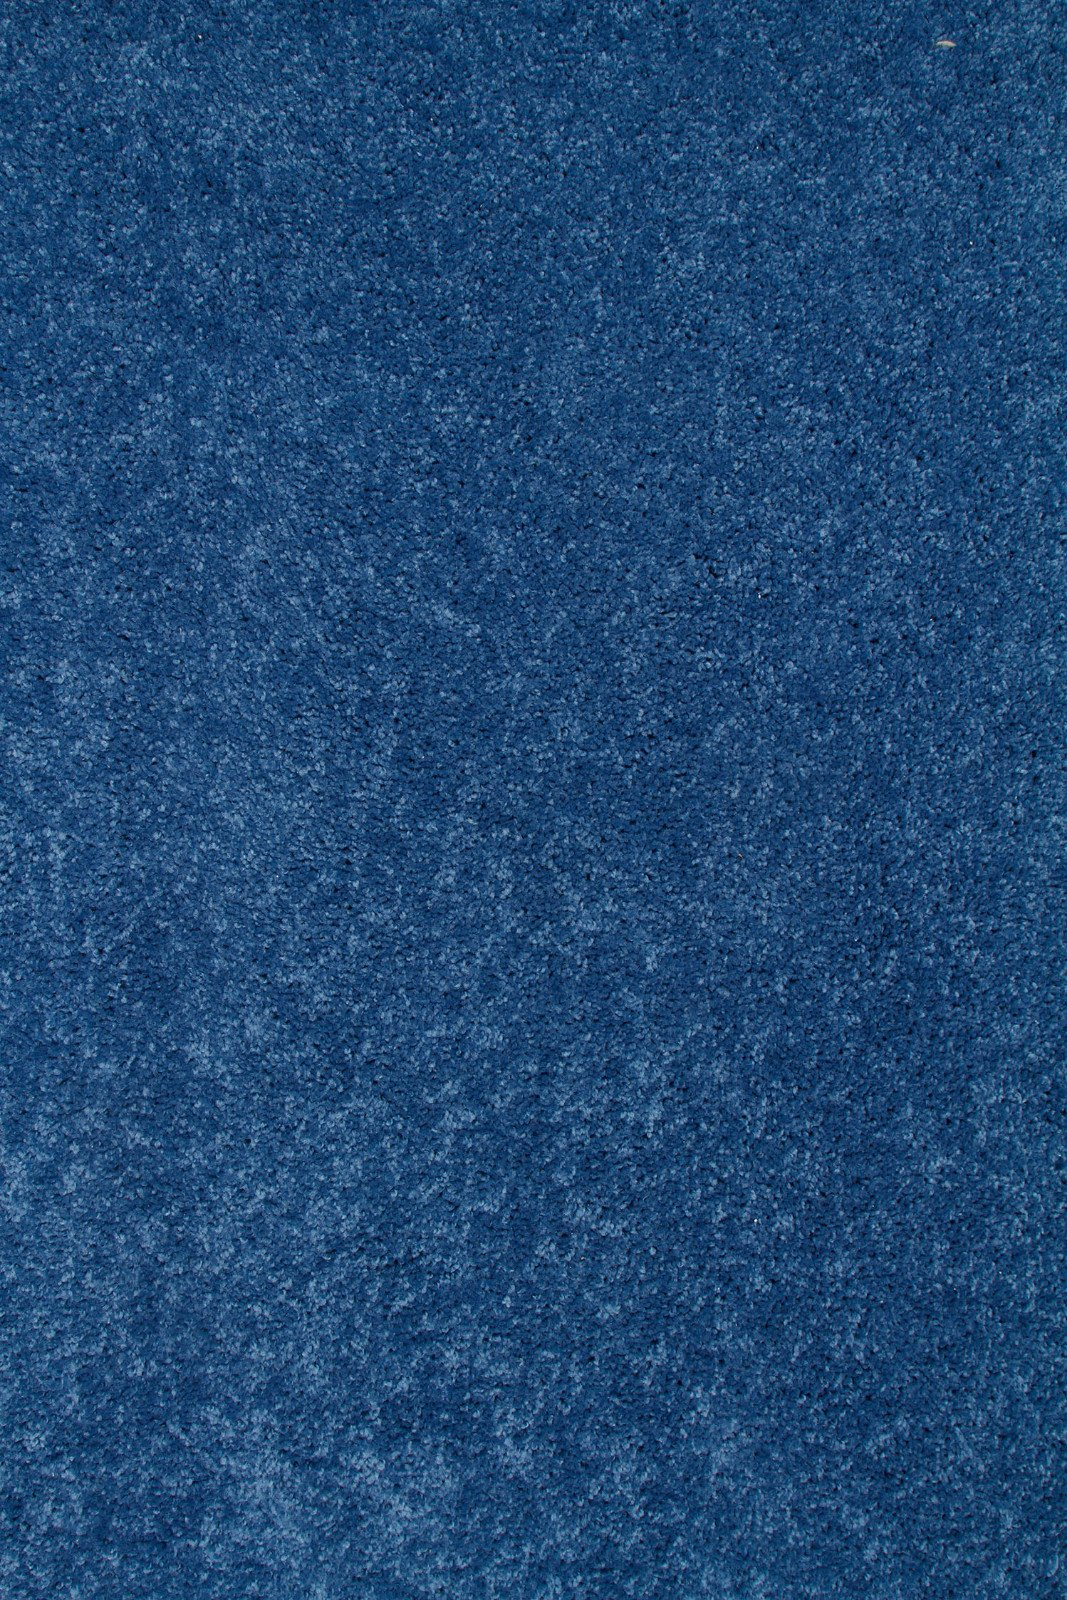 Ambiant Kids Solid Color Royal 3'X5' - Area Rug